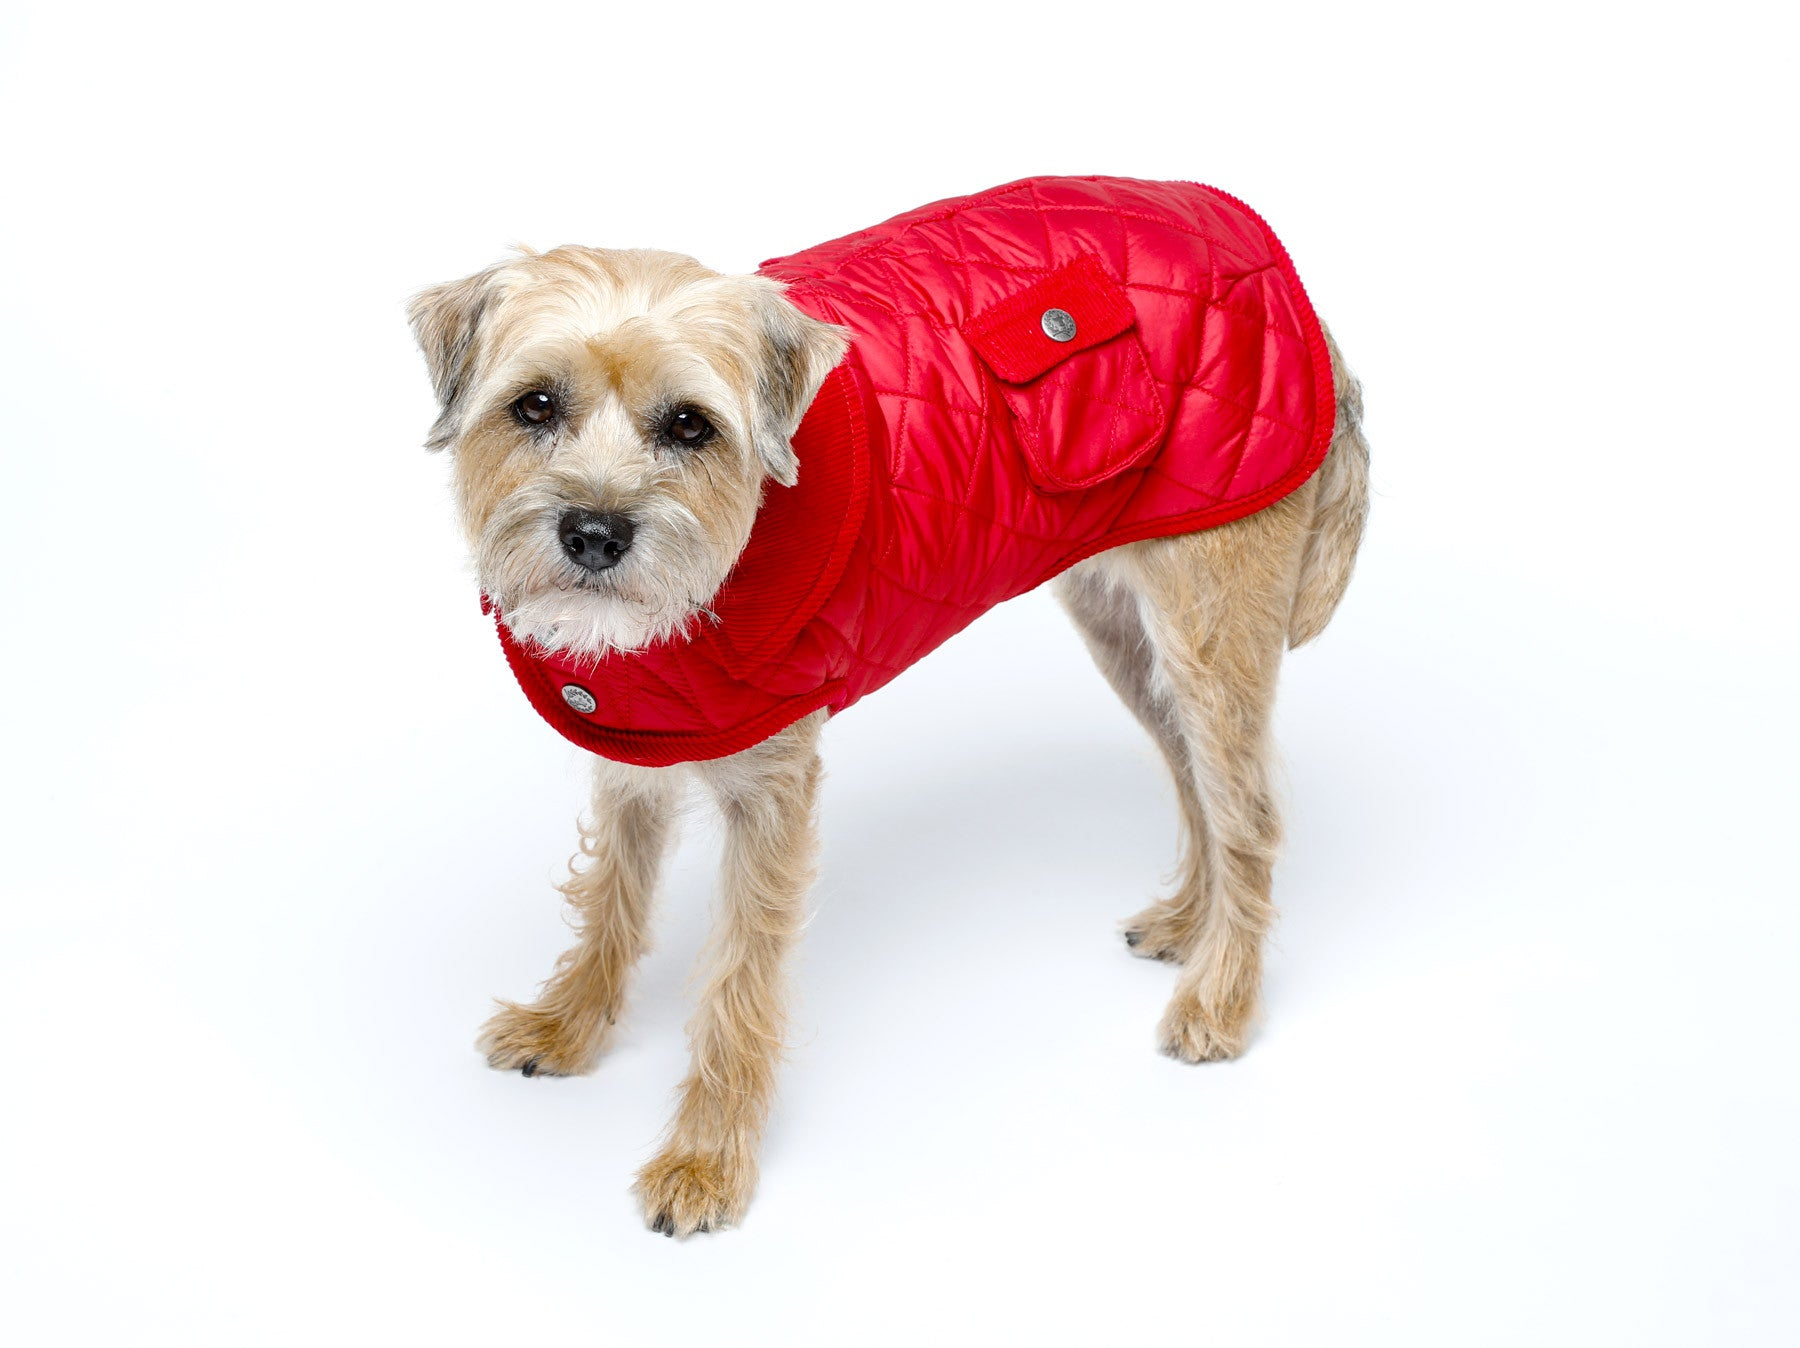 Dog Coat - Barn Coat, Dog Coats, 4 Colors